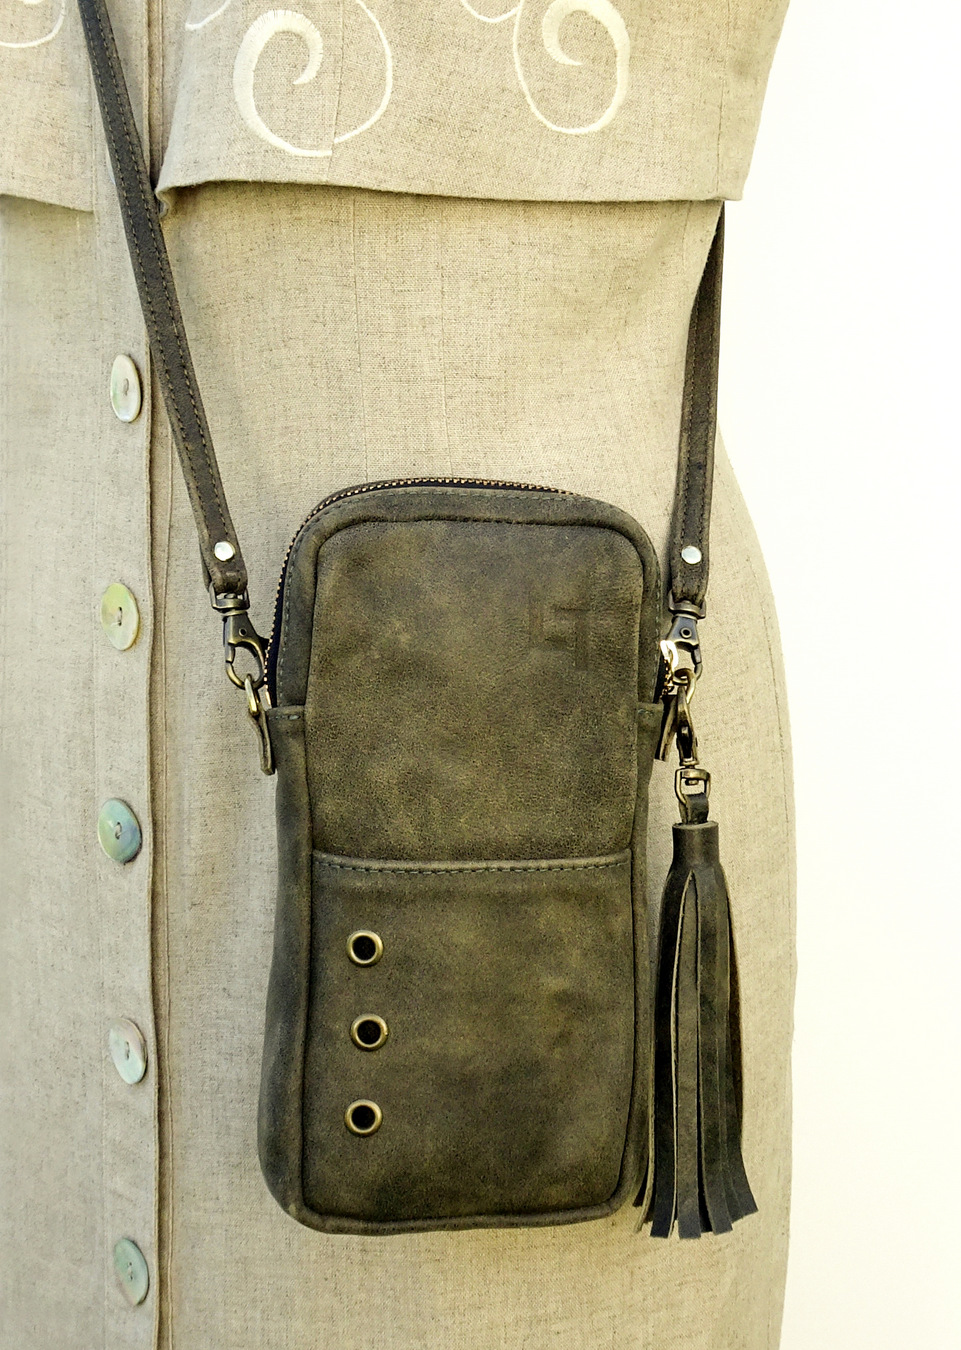 1-Handcrafted Leather Shoulder Bag, The Minimalist, LaPlace Leather, Memphis Tennessee-002.JPG